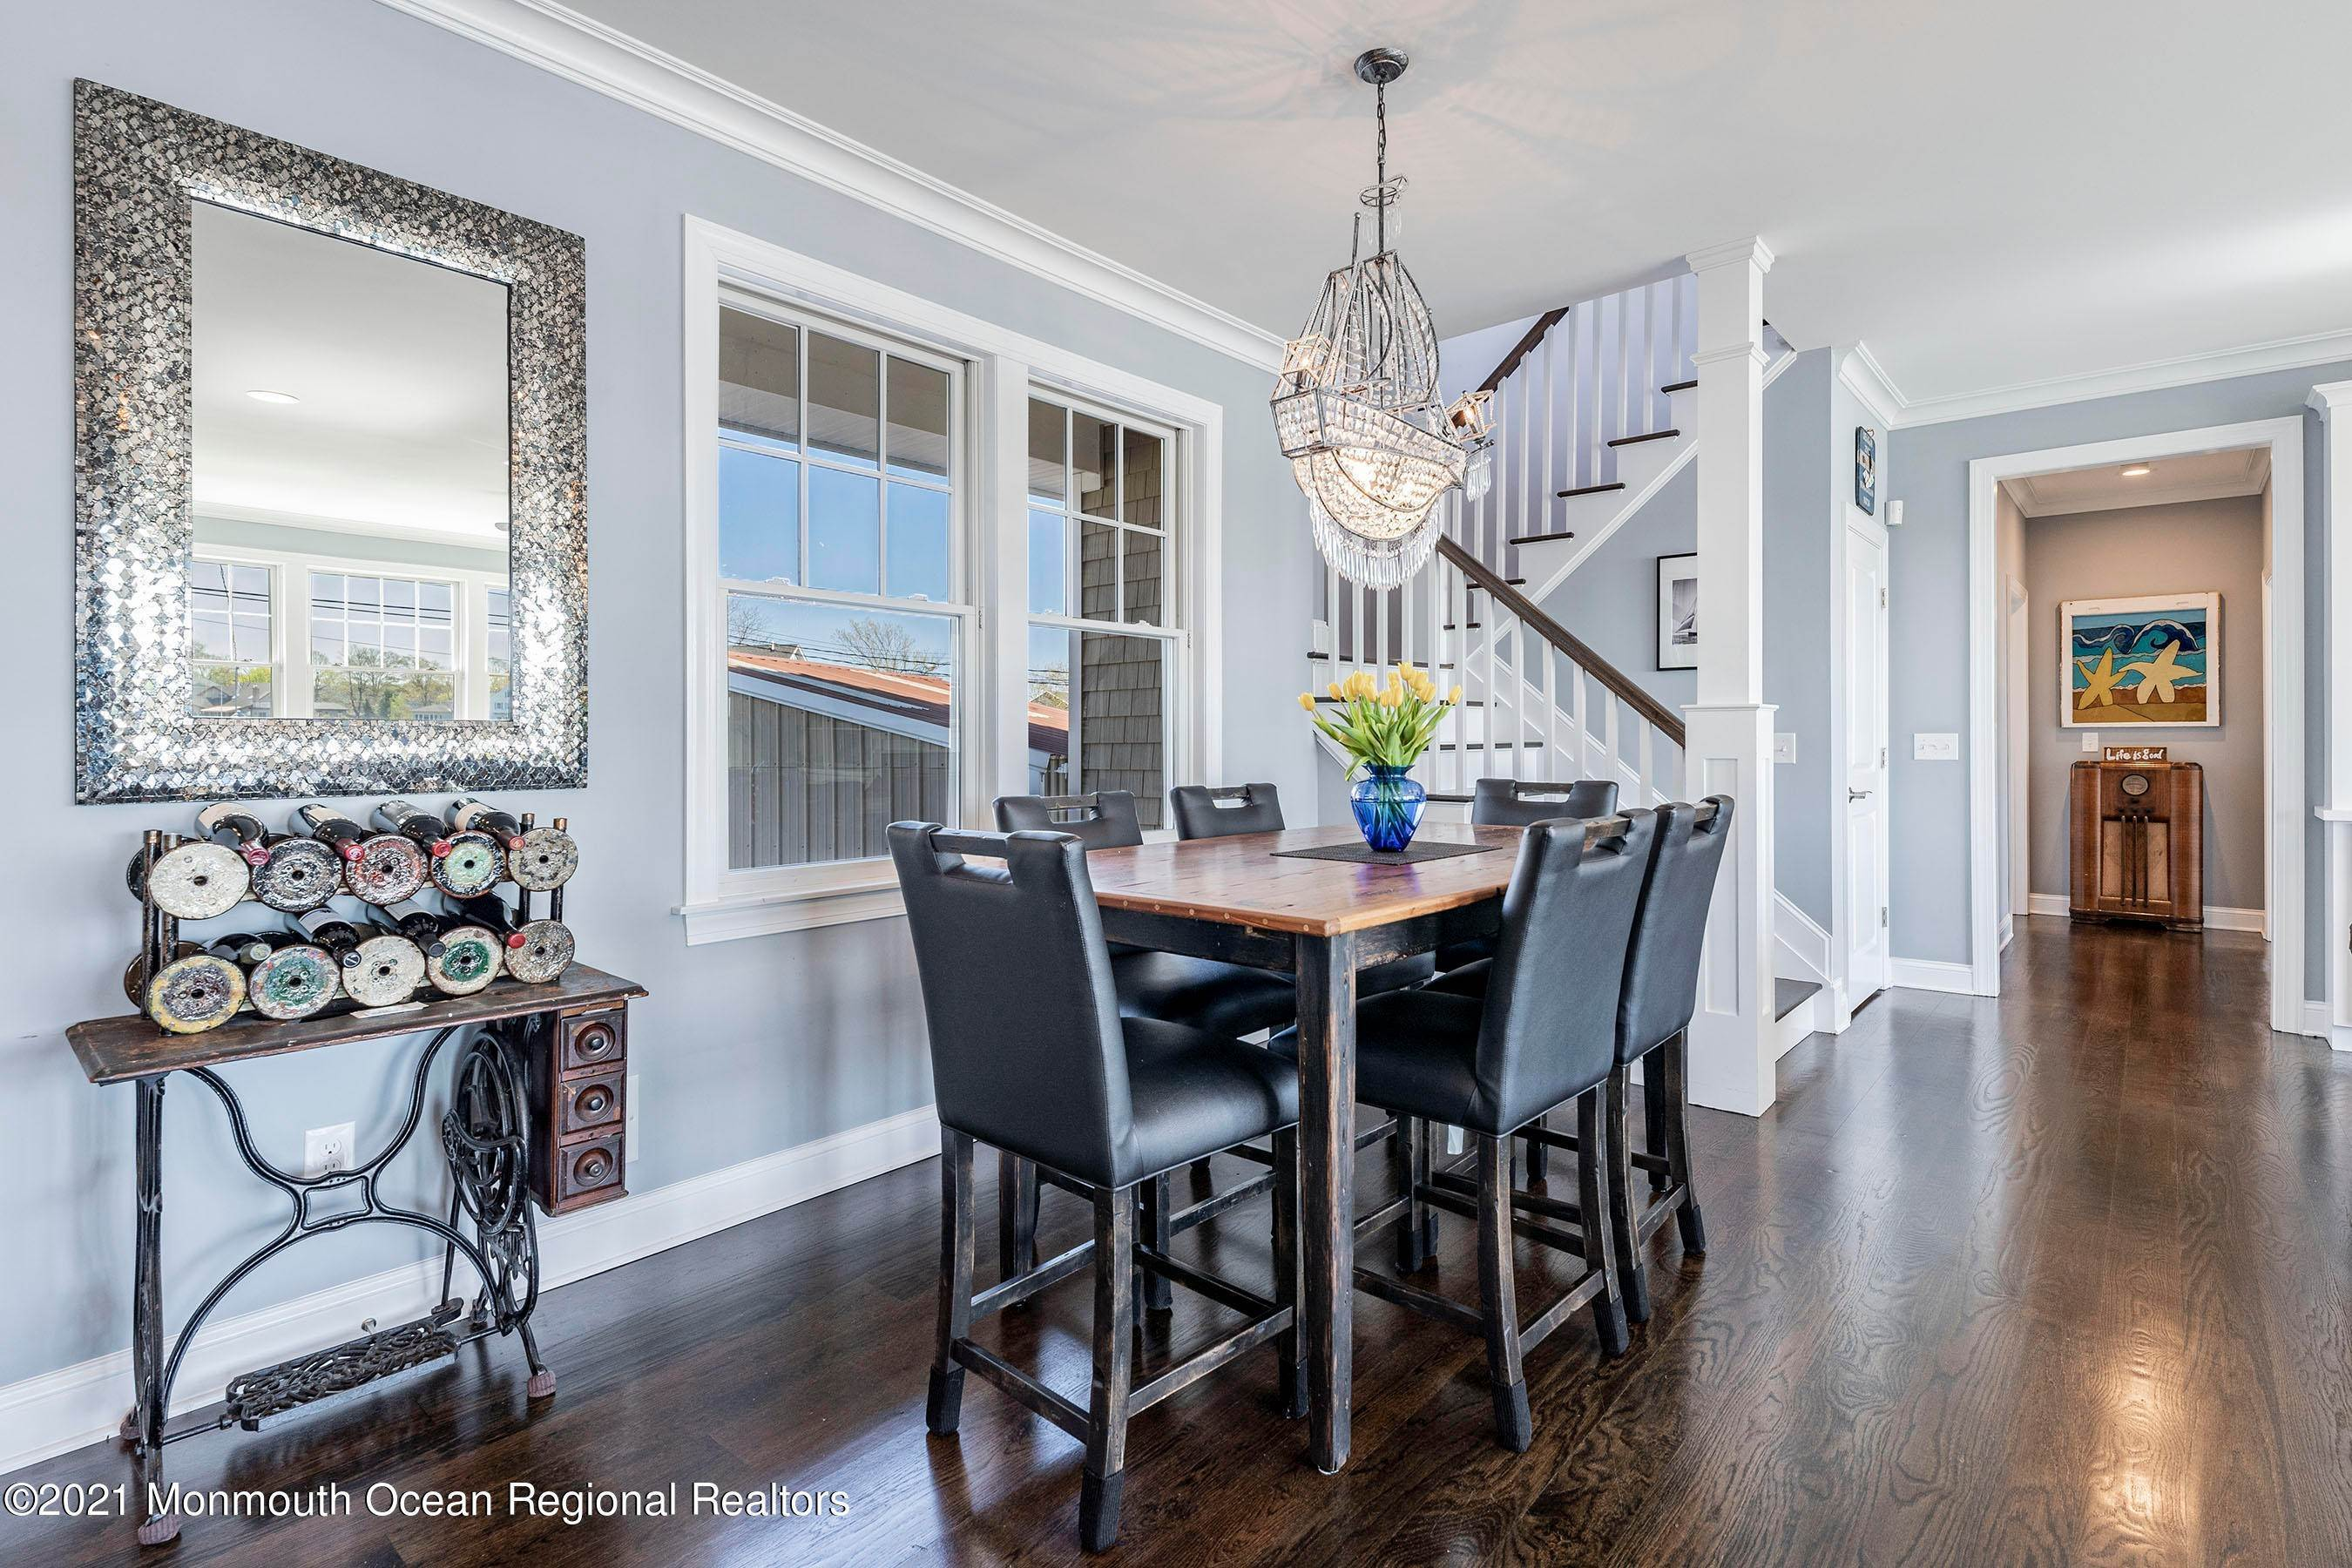 24. Single Family Homes for Sale at 356 Perrine Boulevard Manasquan, New Jersey 08736 United States